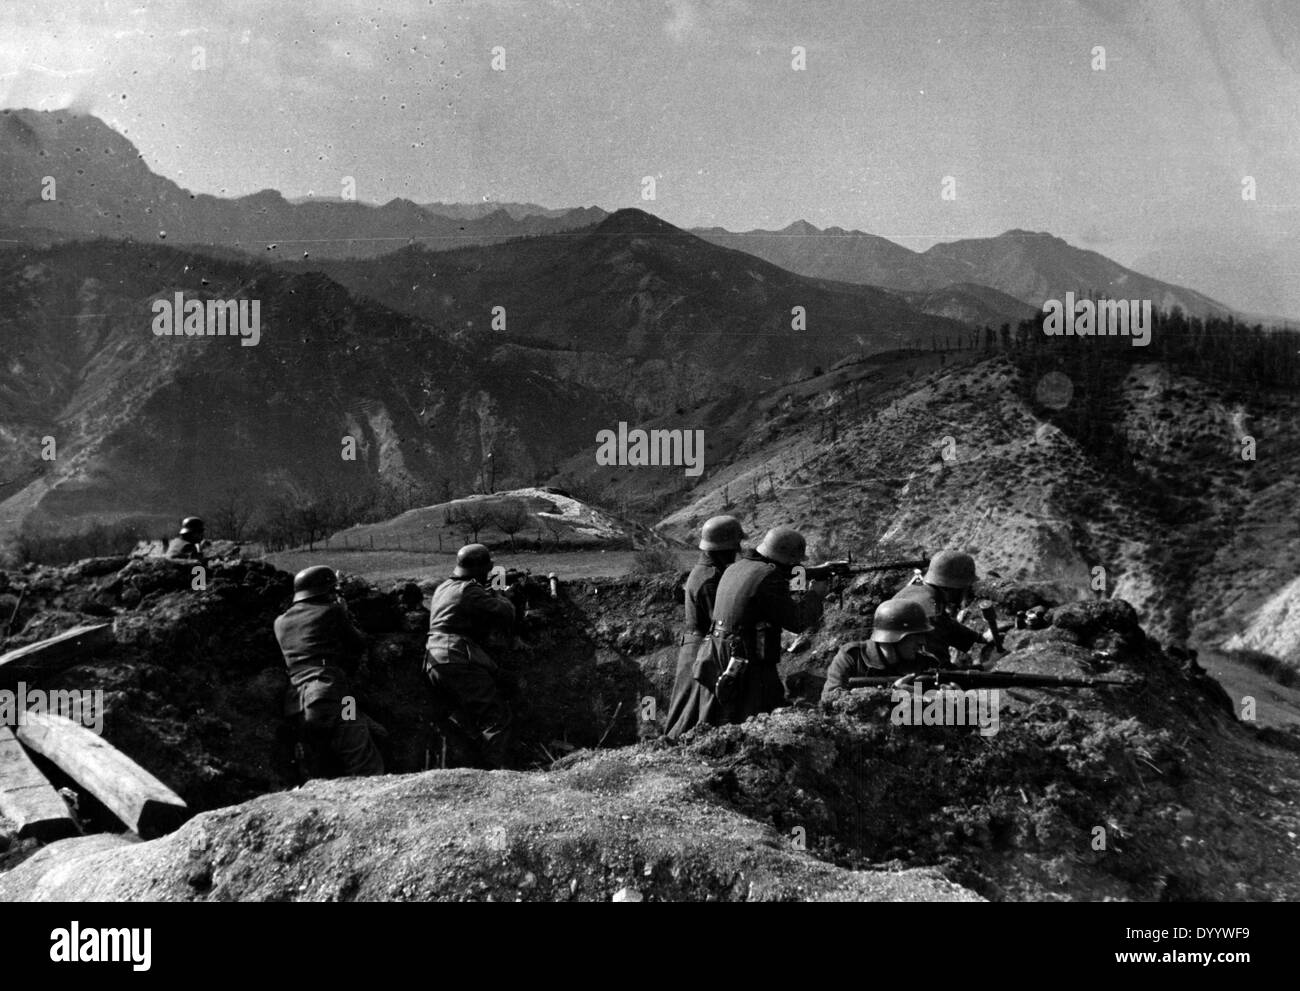 Occupation period in Yugoslavia - combating the partisans, 1941-1945 - Stock Image